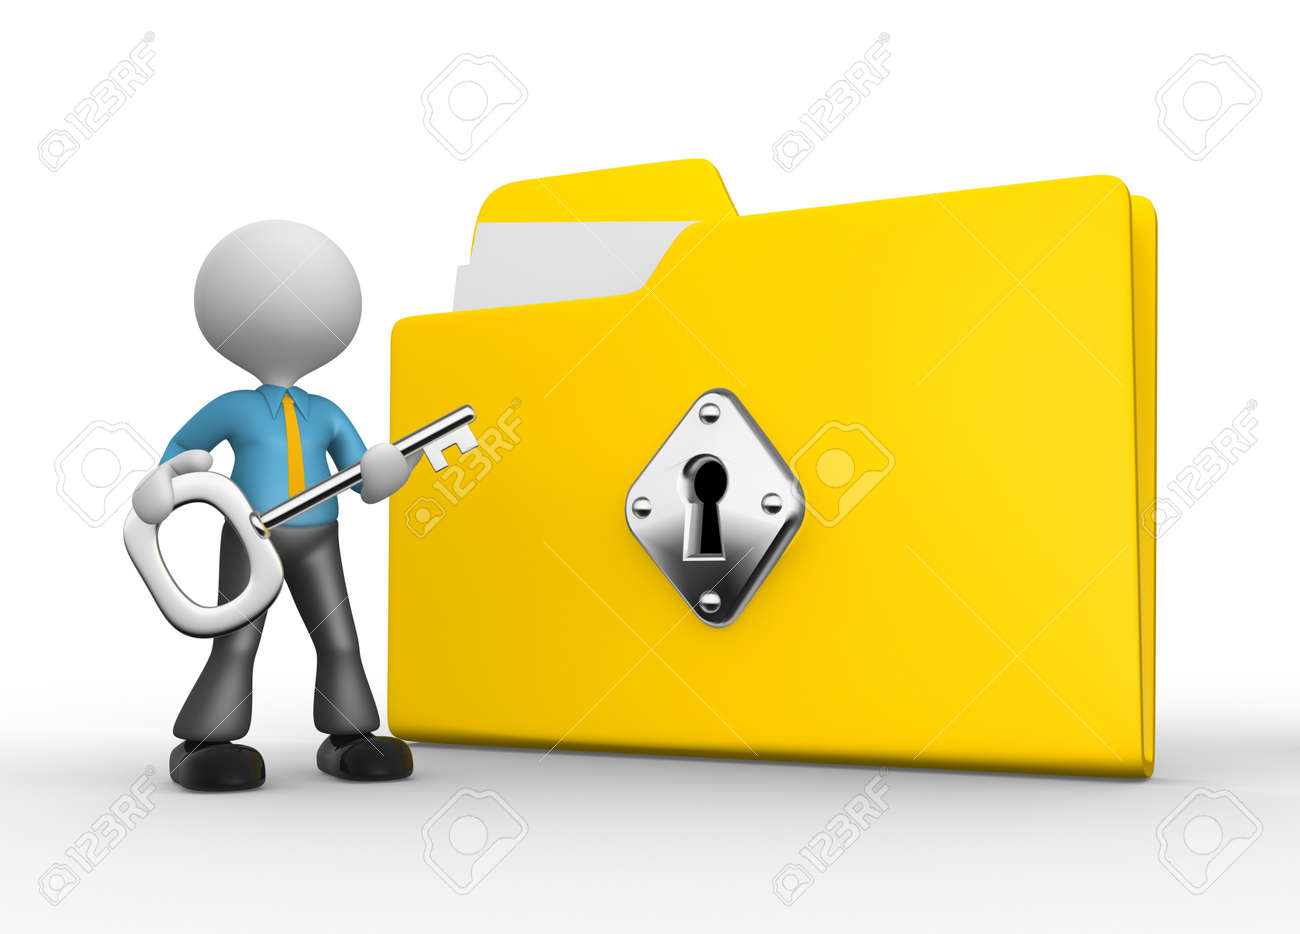 3d people - man, person with protected folder holding key in his hand. Stock Photo - 18492339